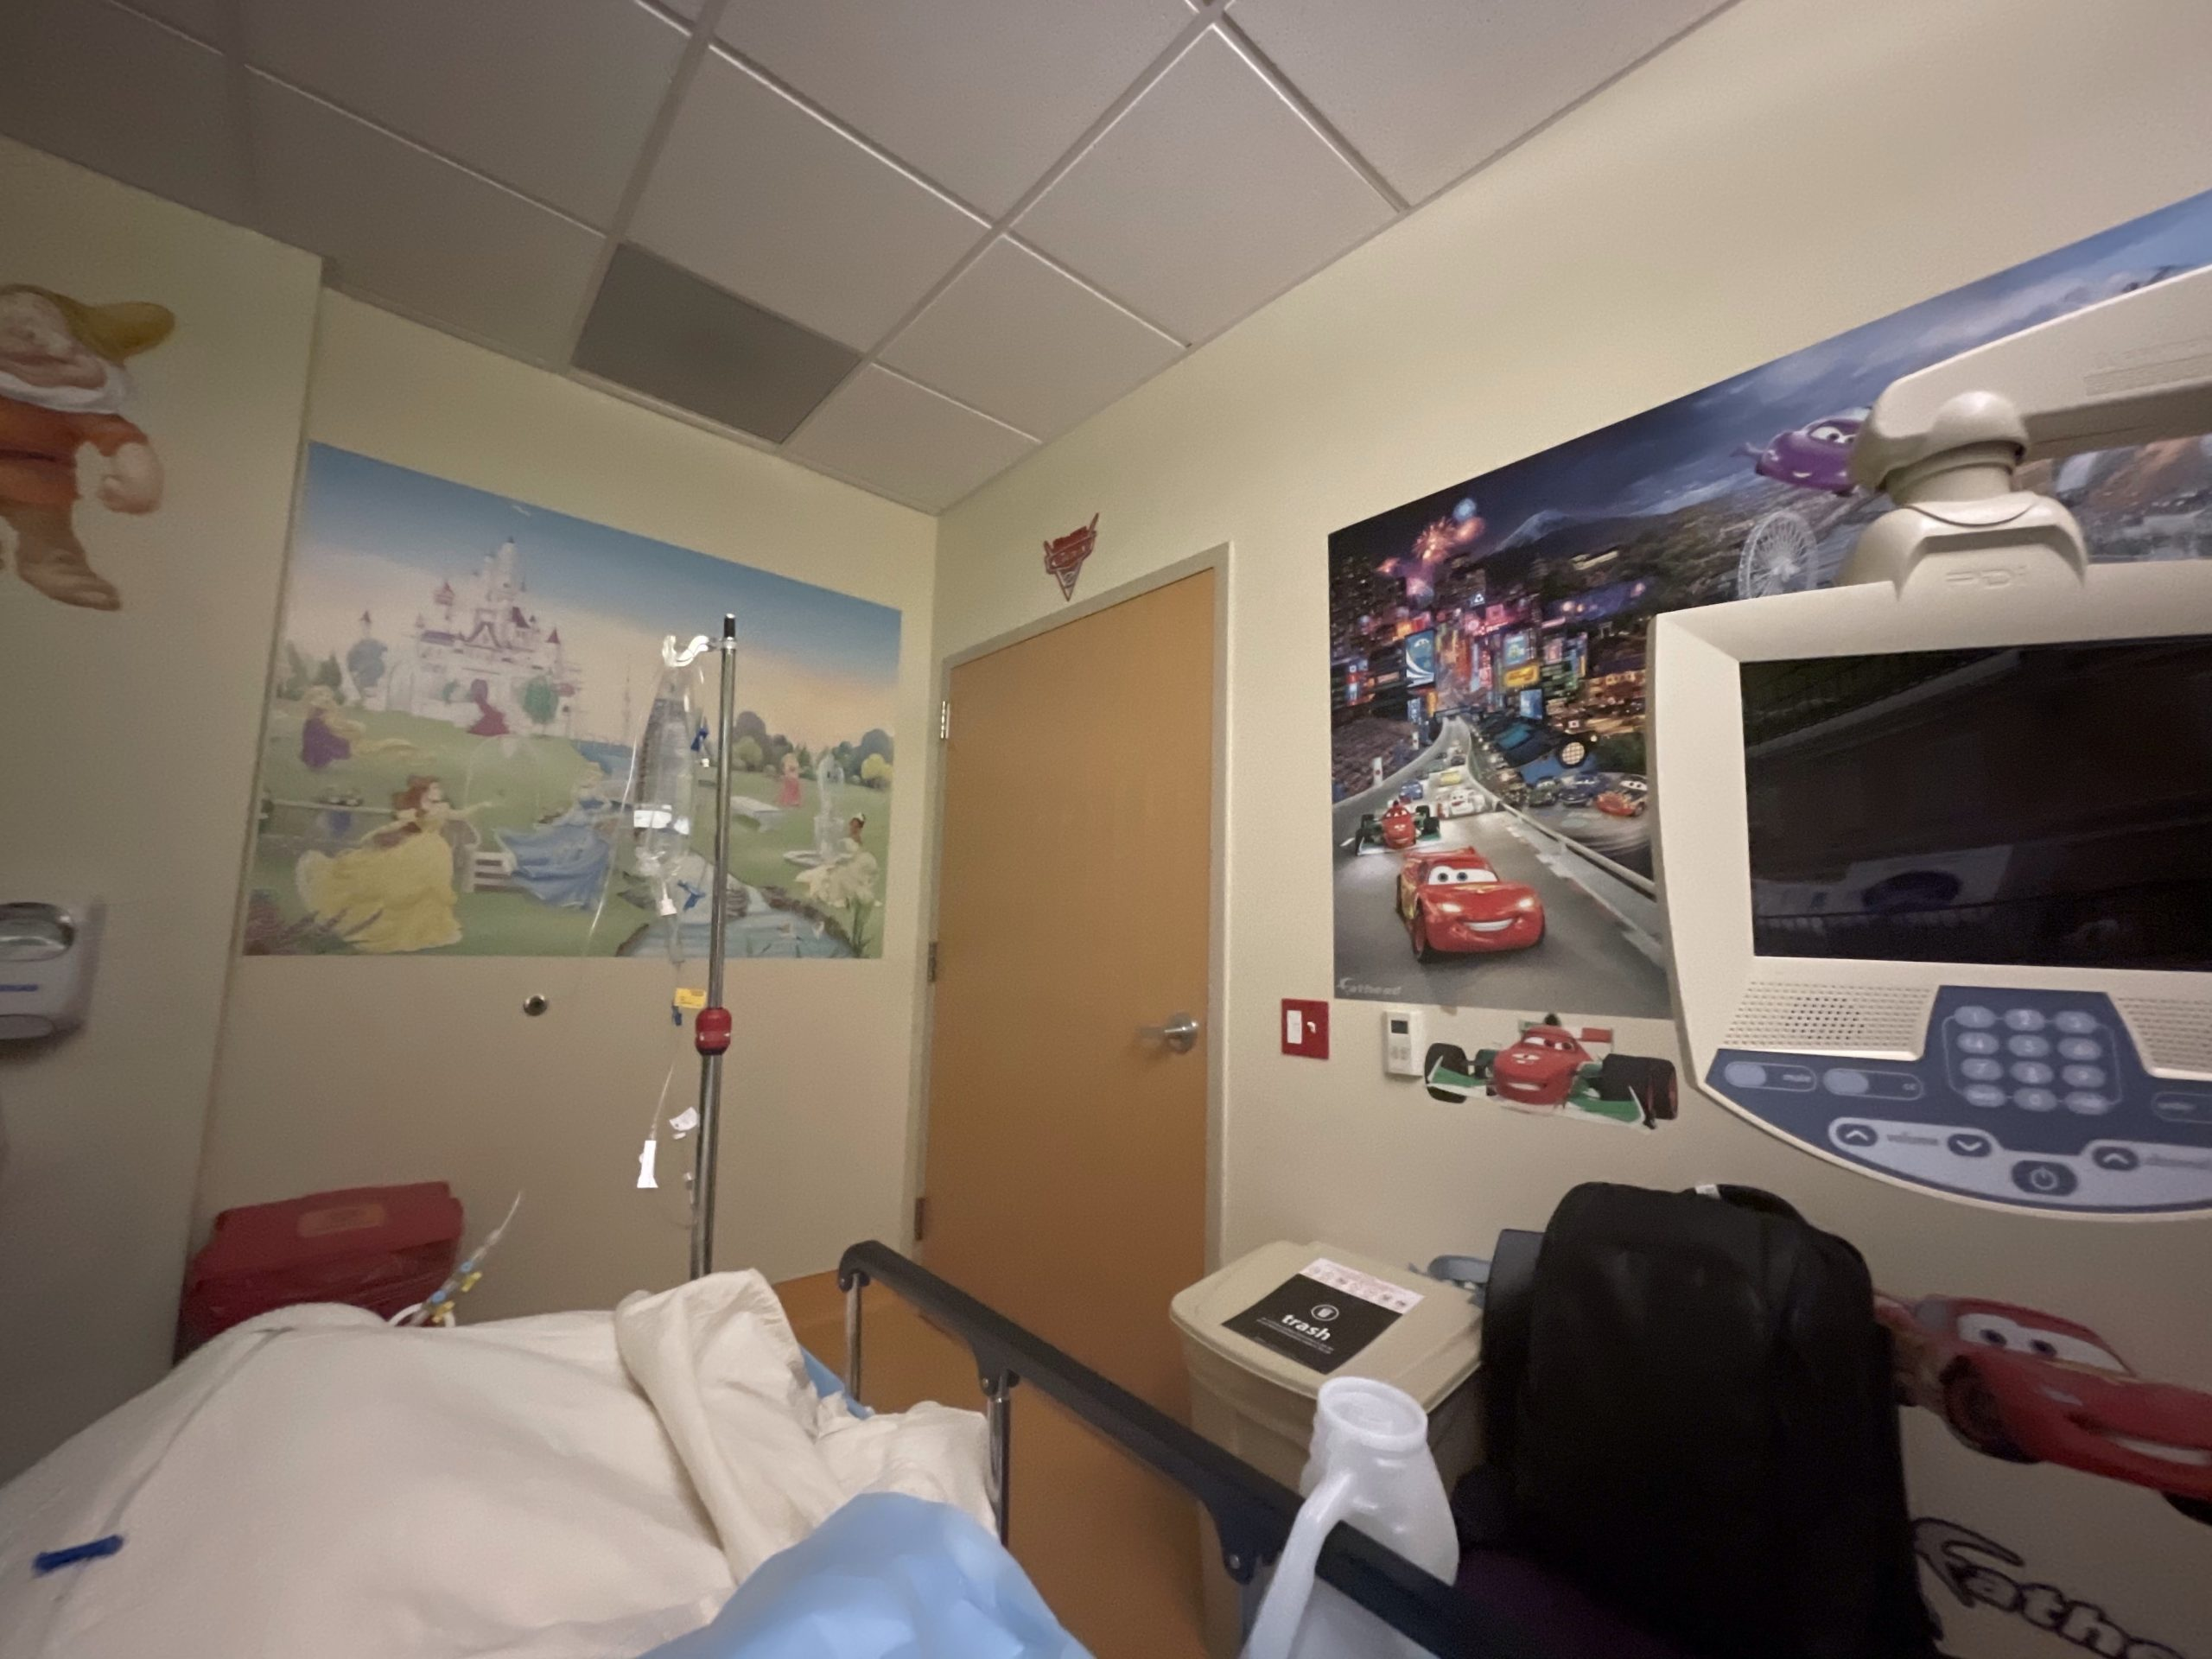 Wide angle photo of hospital room. There is a bed, IV and tv screen in the foreground and posters of animated characters on the walls.